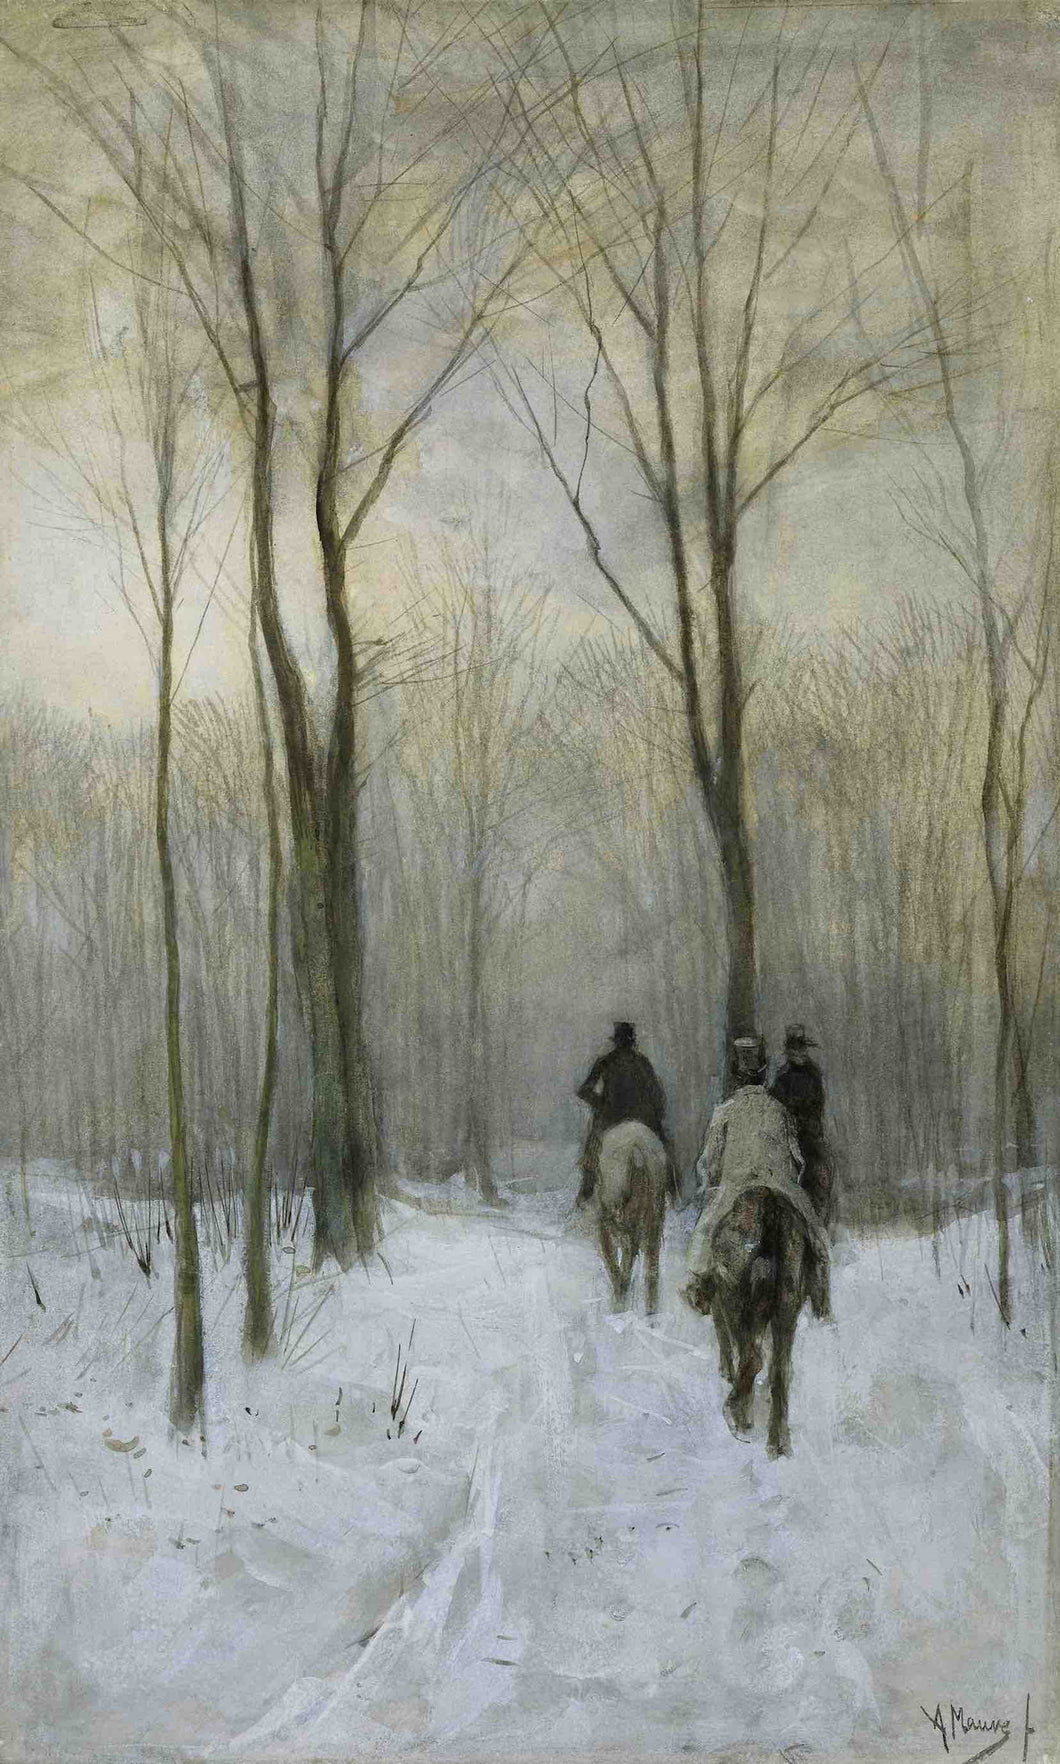 Anton Mauve, Riders in the Snow in the Haagse Bos